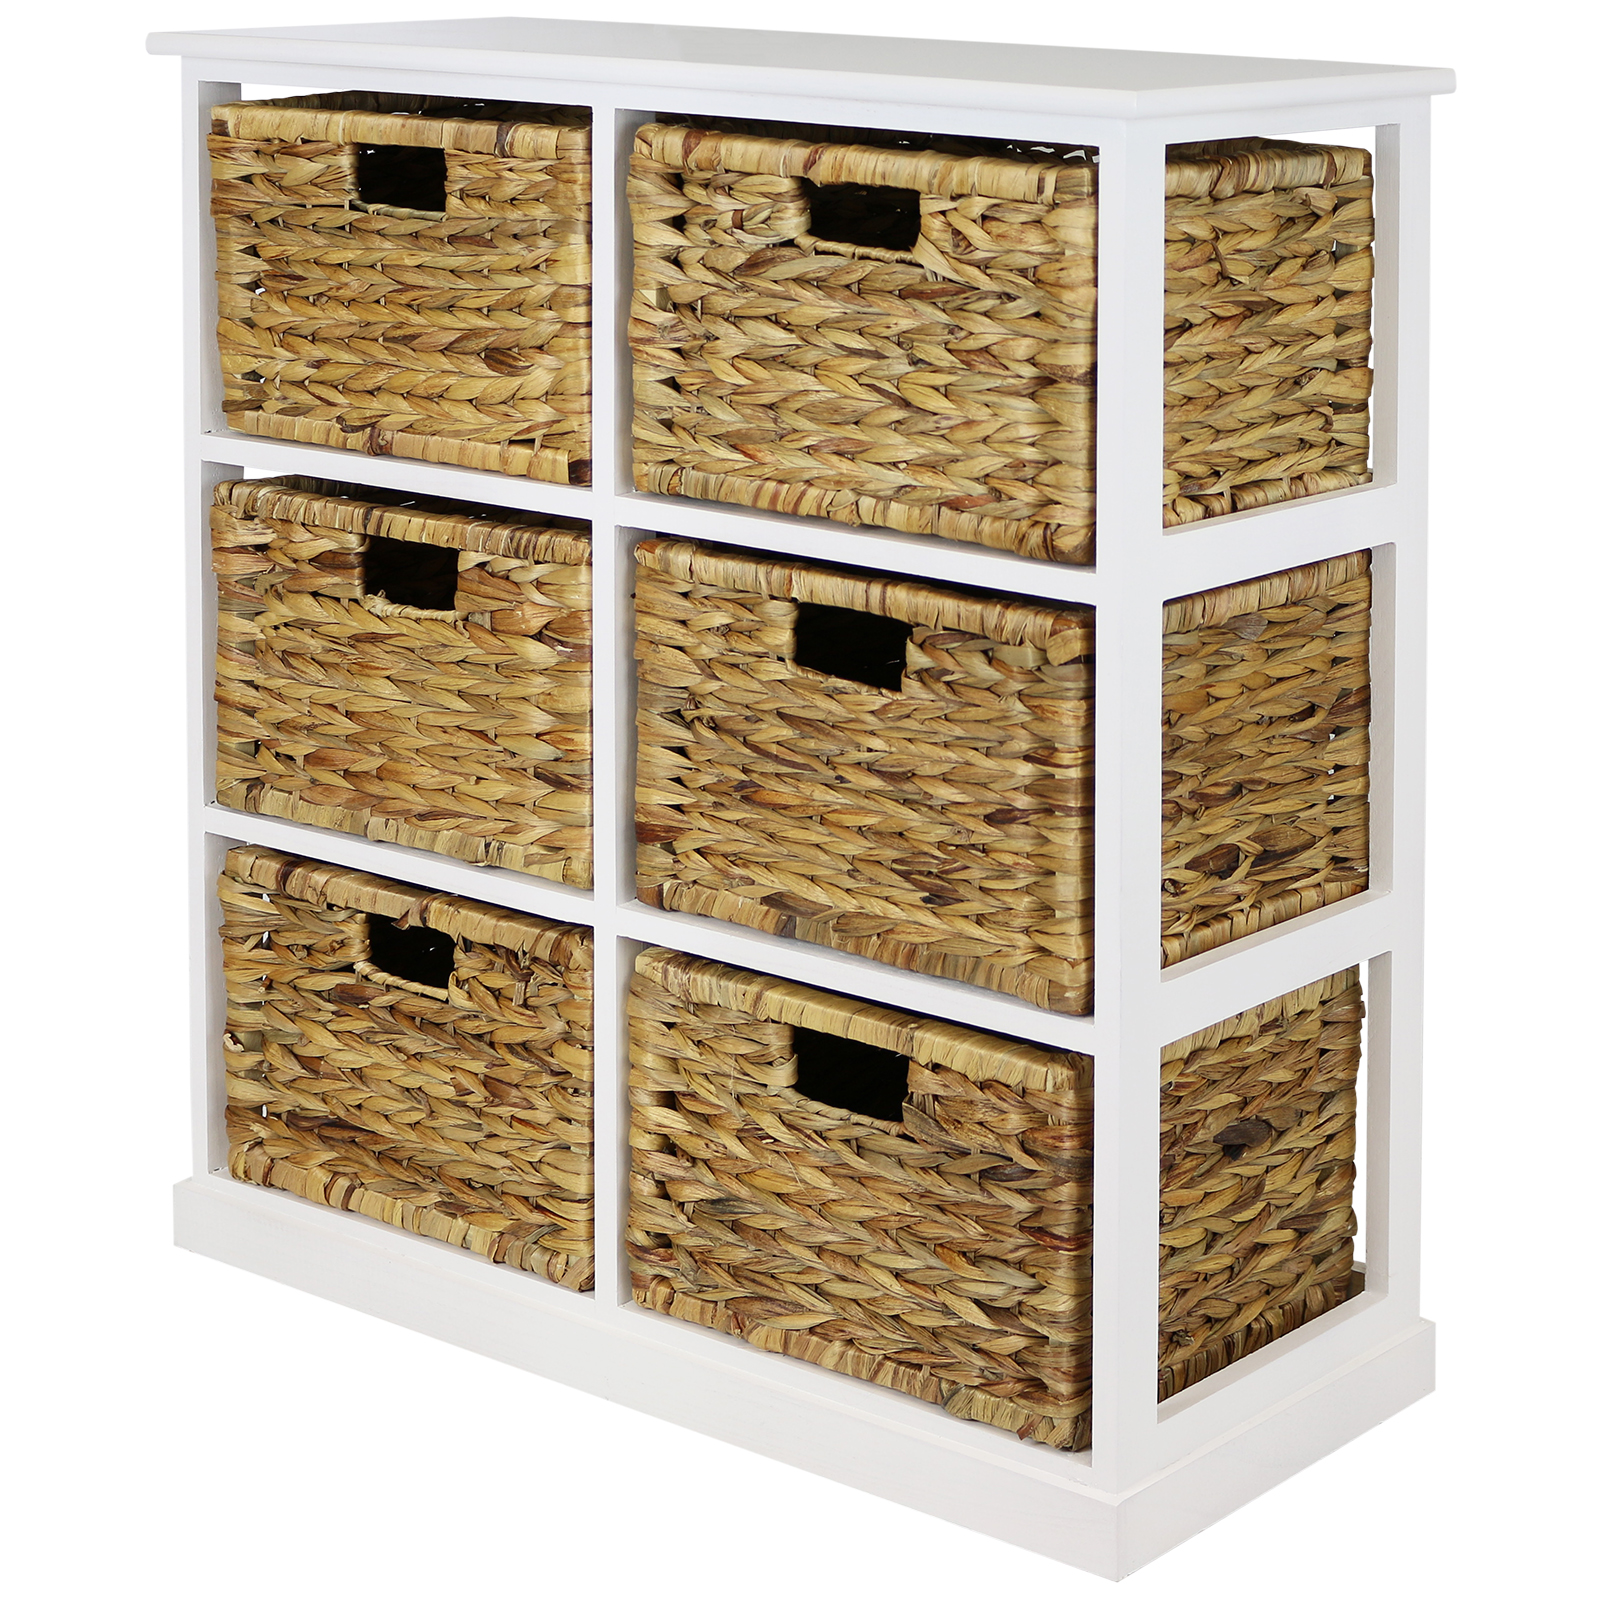 Buy Wicker Storage Basket Kitchen Drawer Style From The: HARTLEYS 2x3 WHITE WOOD HOME STORAGE UNIT 6 WICKER DRAWER